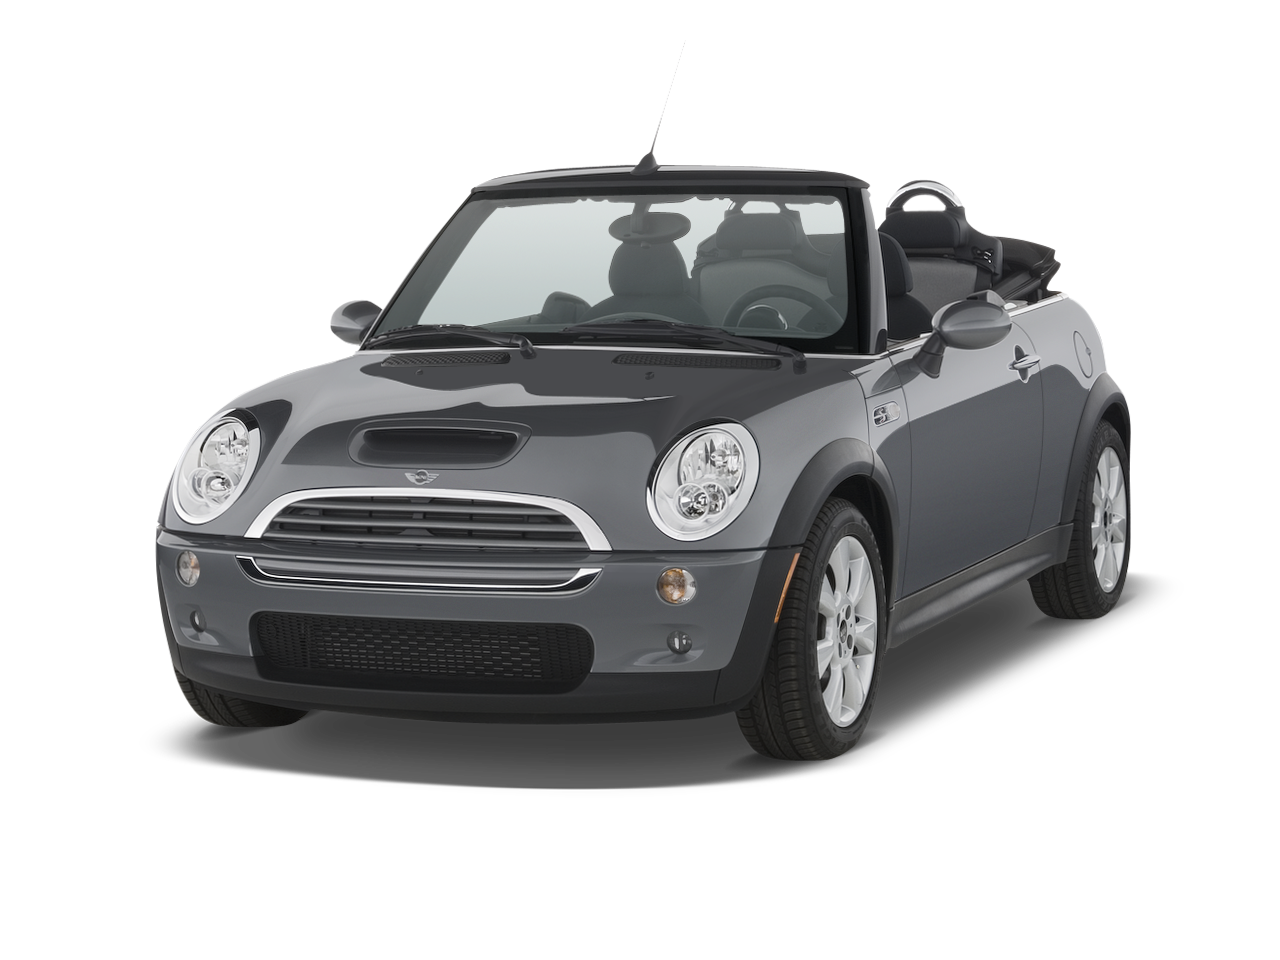 2007 mini cooper s john cooper works latest news features and auto show coverage. Black Bedroom Furniture Sets. Home Design Ideas